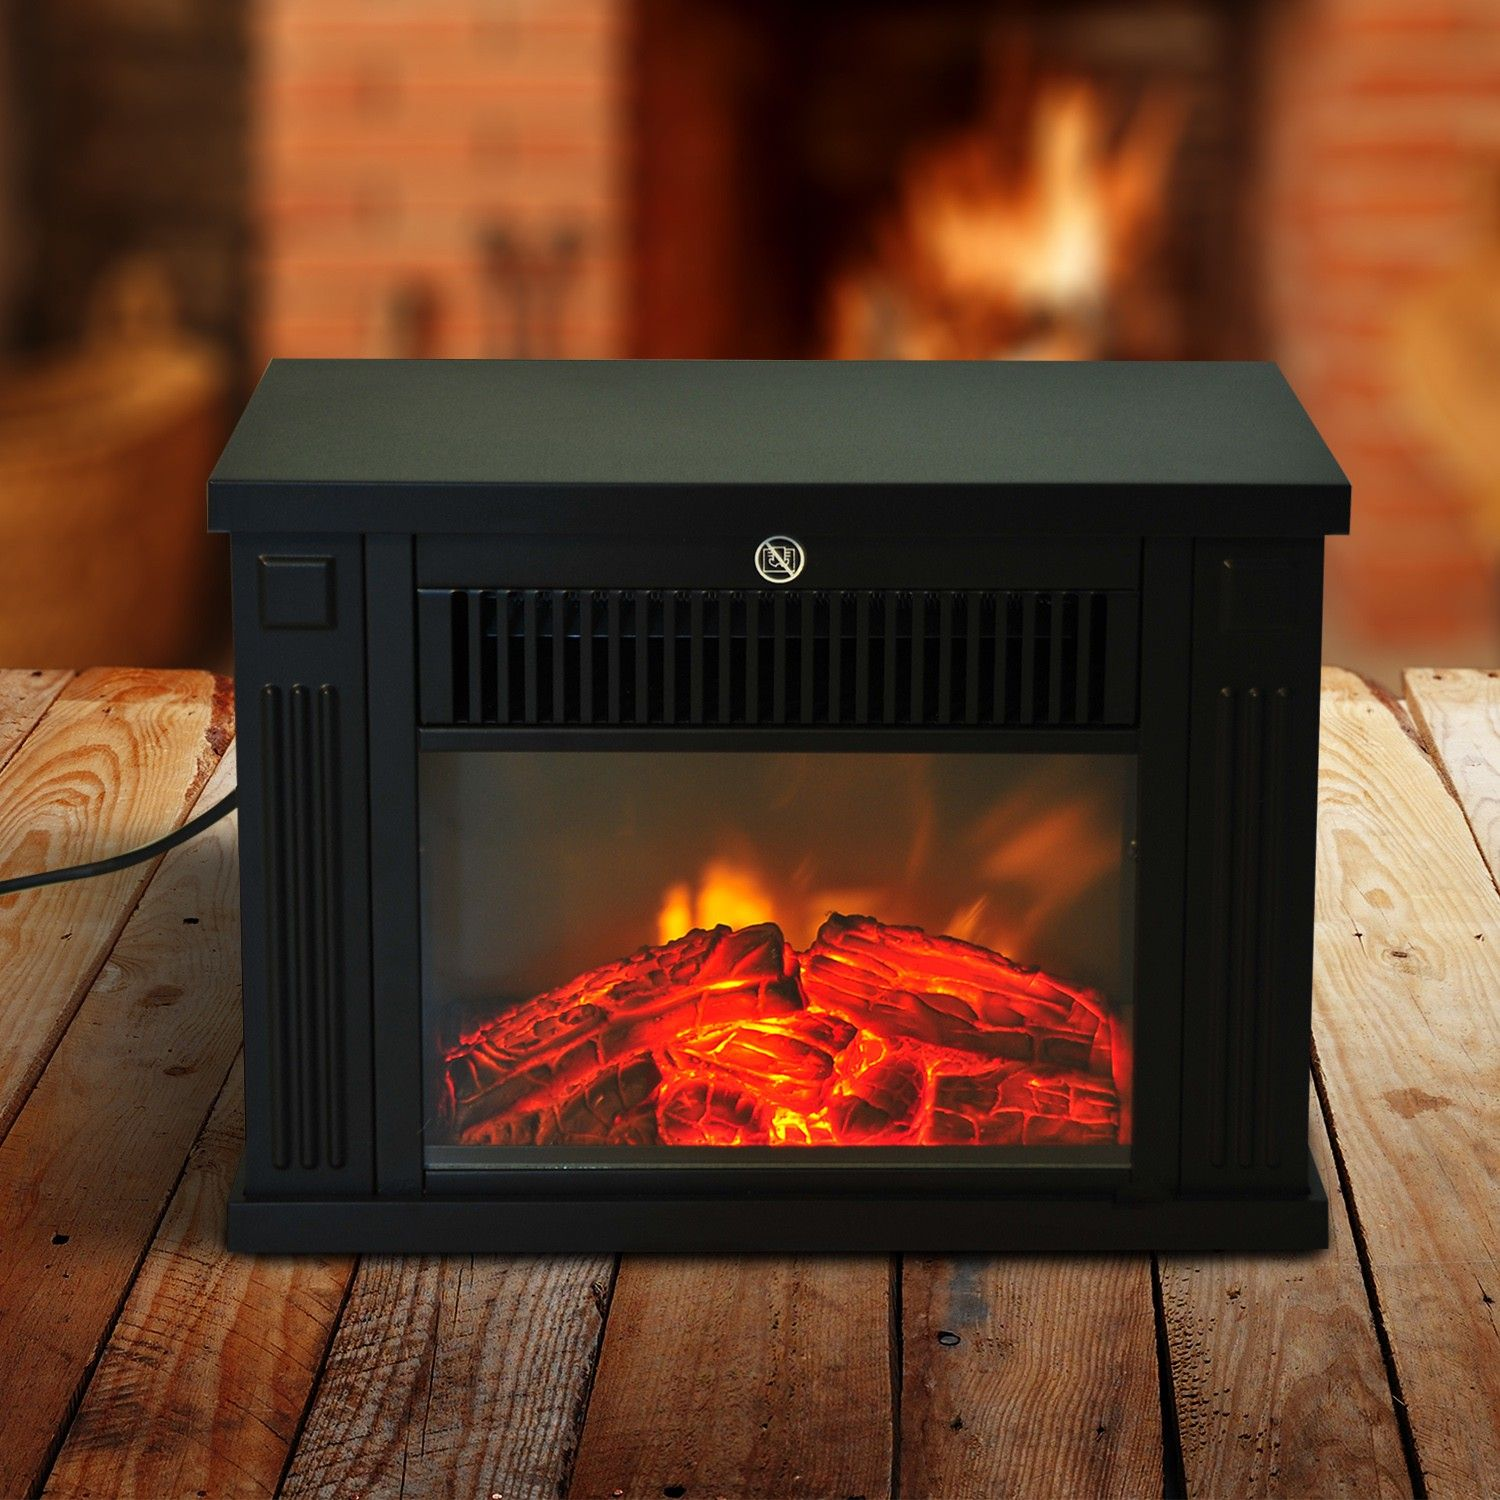 Homcom 14 1000w Free Standing Electric Fireplace Black Fireplaces Accessories Aosom Canada Portable Electric Fireplace Electric Fireplace Free Standing Electric Fireplace